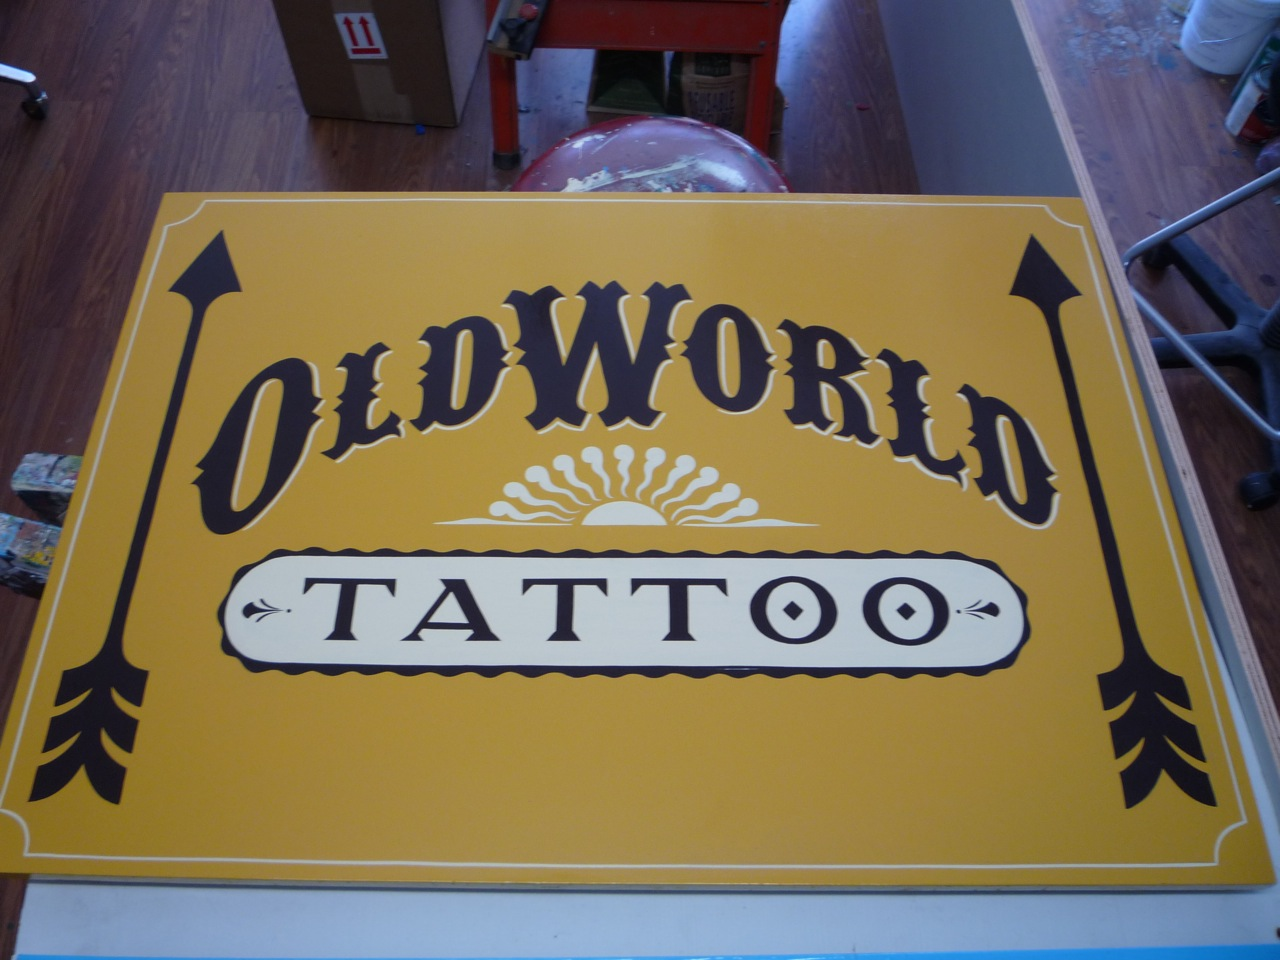 HAND-old-world-tattoo-simple_4844776020_o.jpg